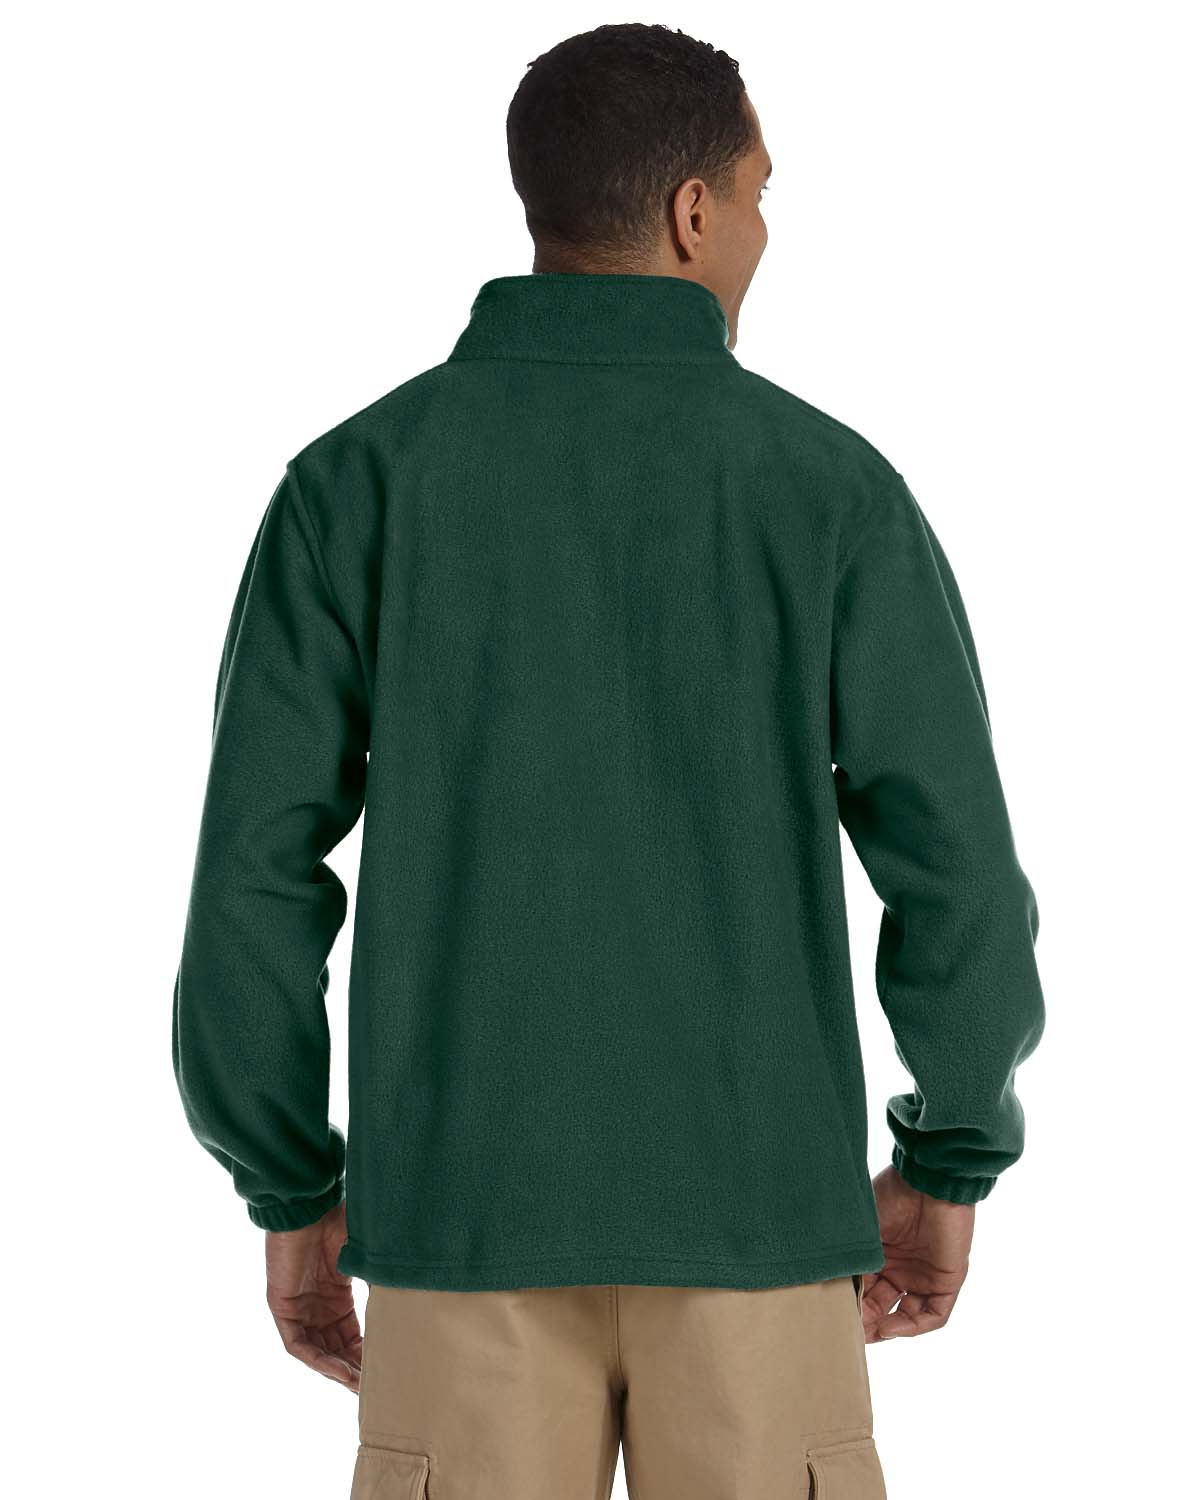 Harriton-Jacket-Men-039-s-8-oz-Full-Zip-Fleece-Solid-S-XL-R-M990 thumbnail 15